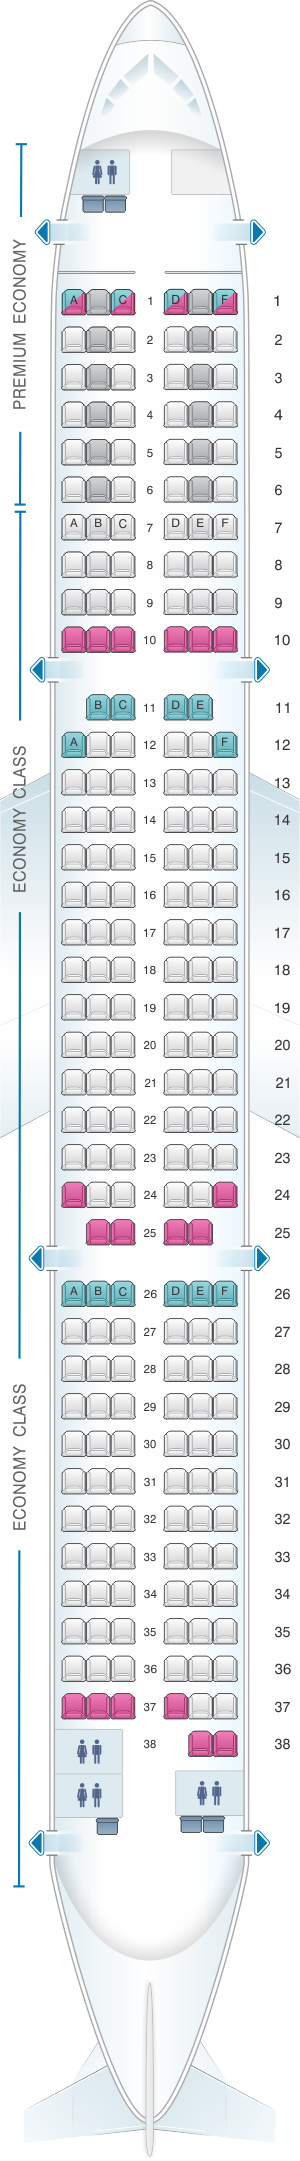 Seat map for Condor Airbus A321 200